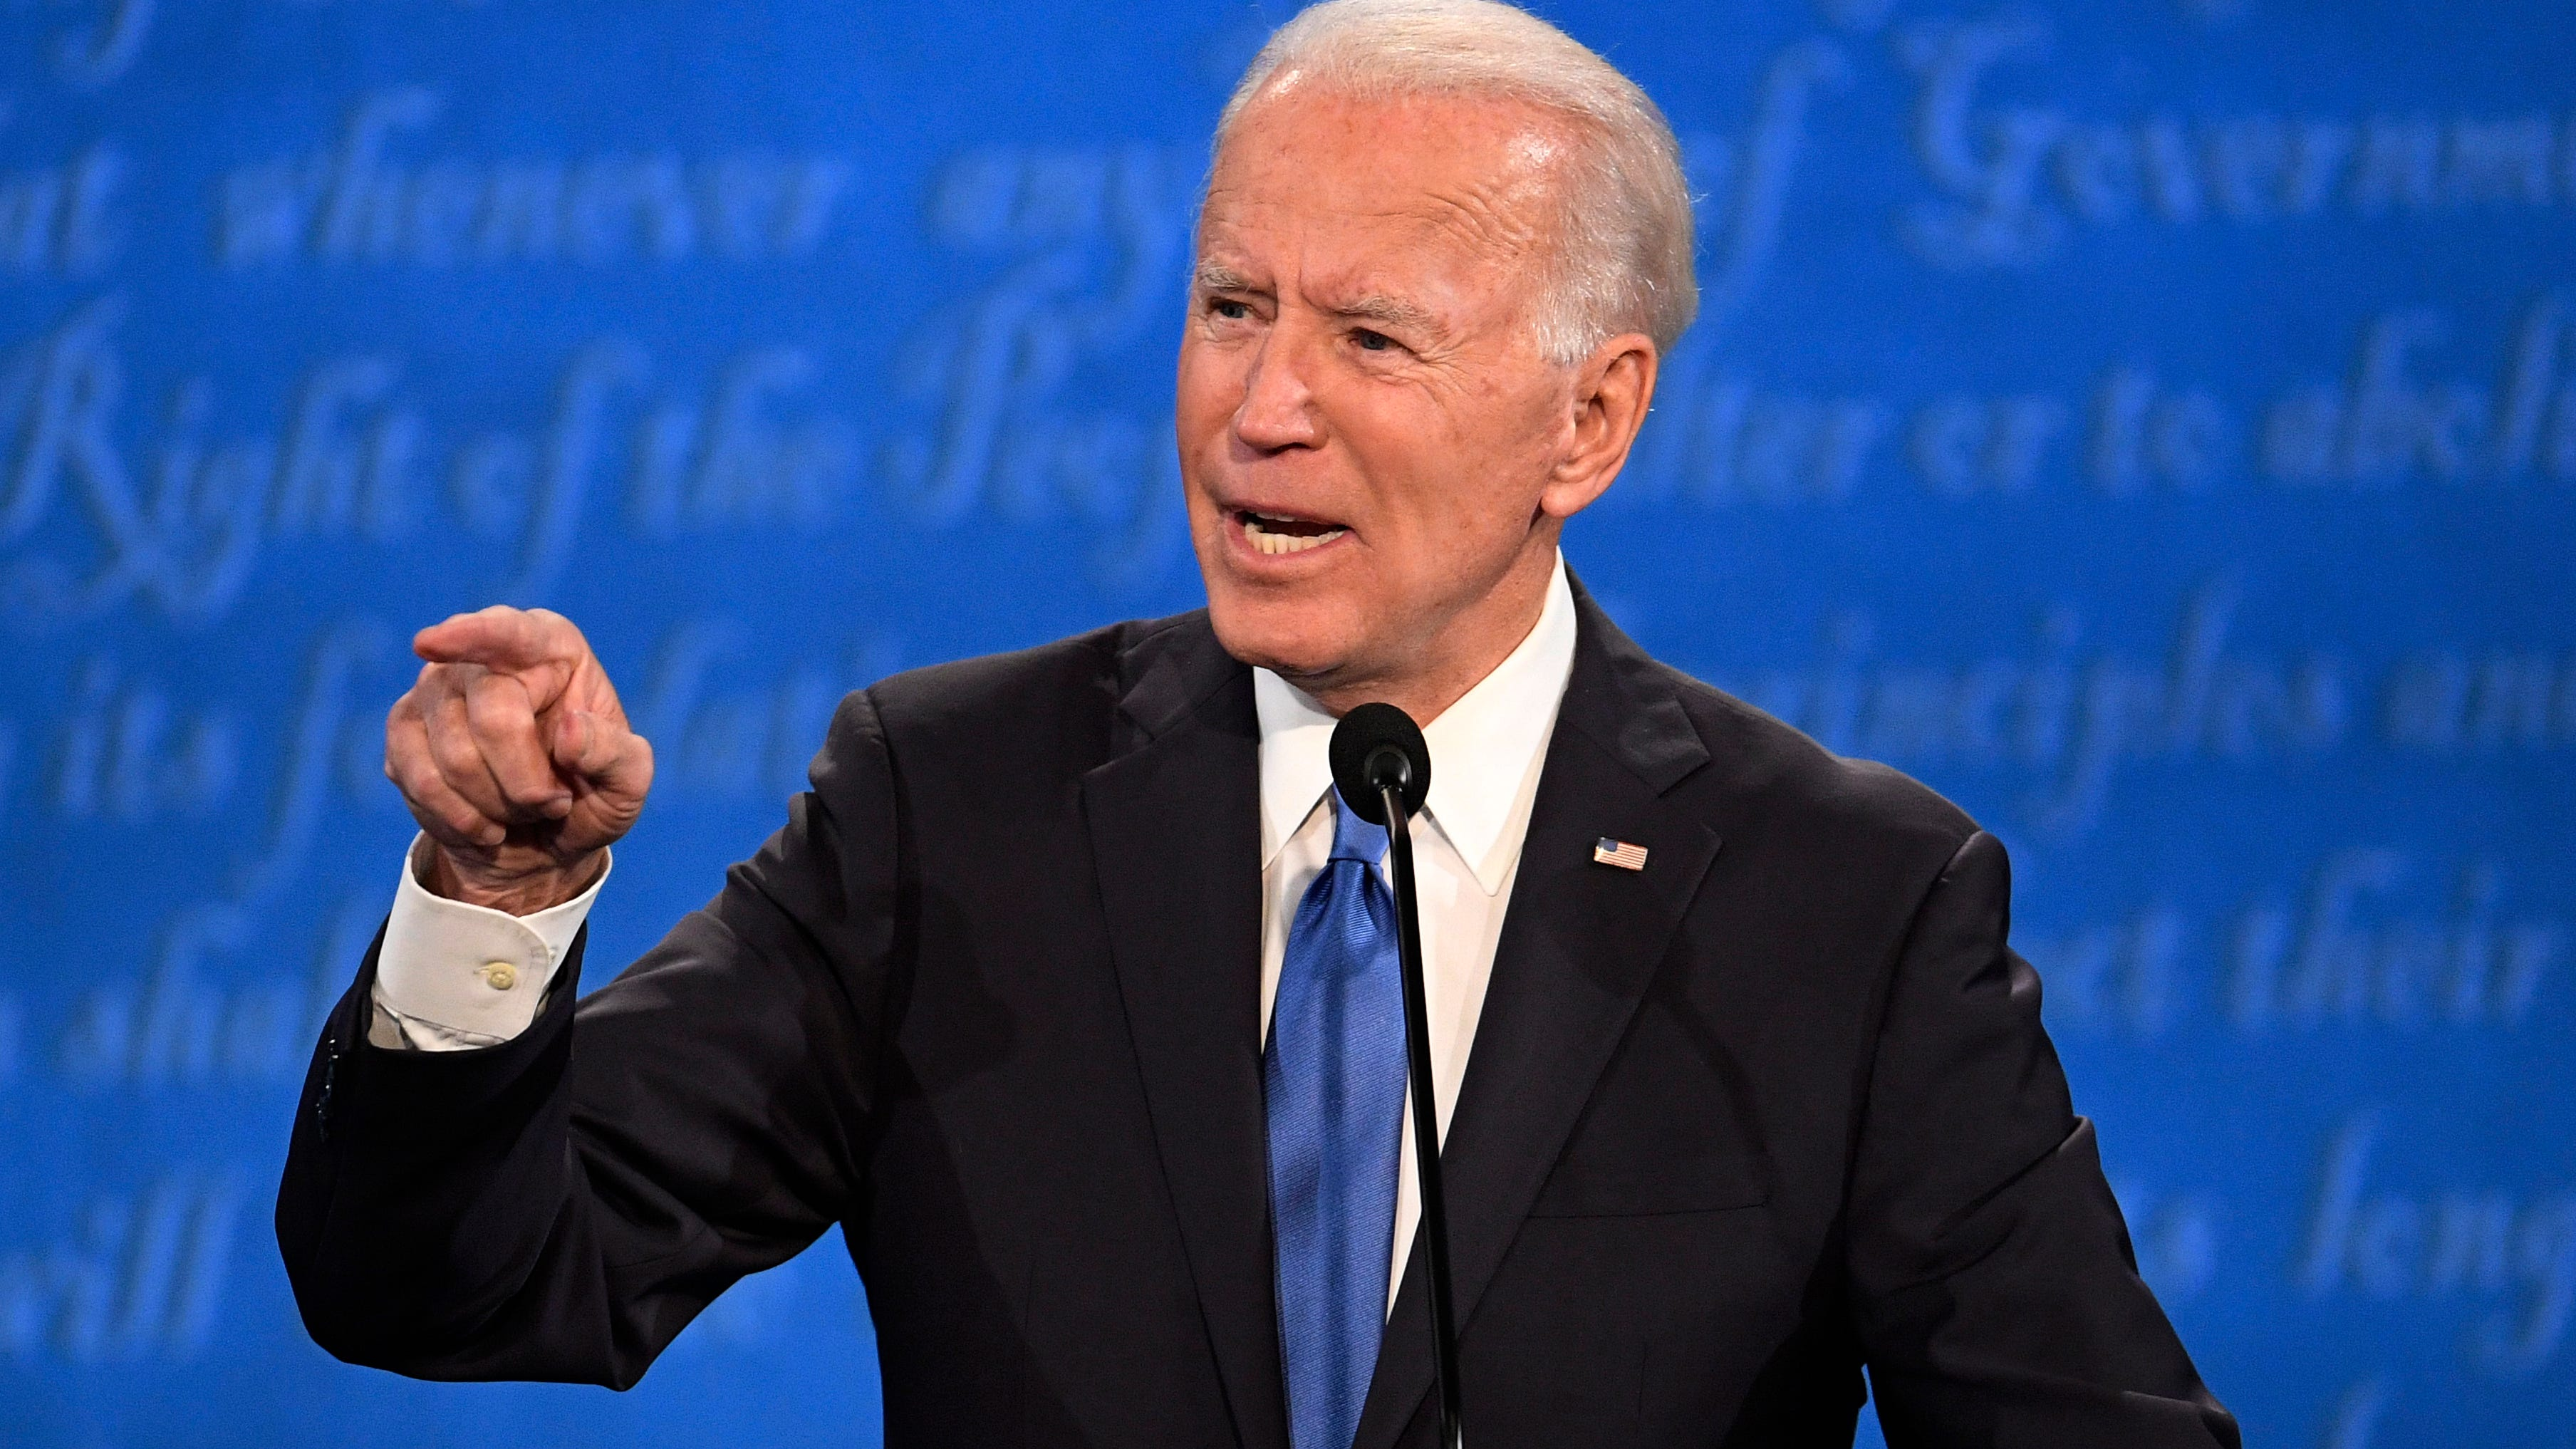 Joe Biden supported by former U.S. attorneys appointed by Bush, Reagan